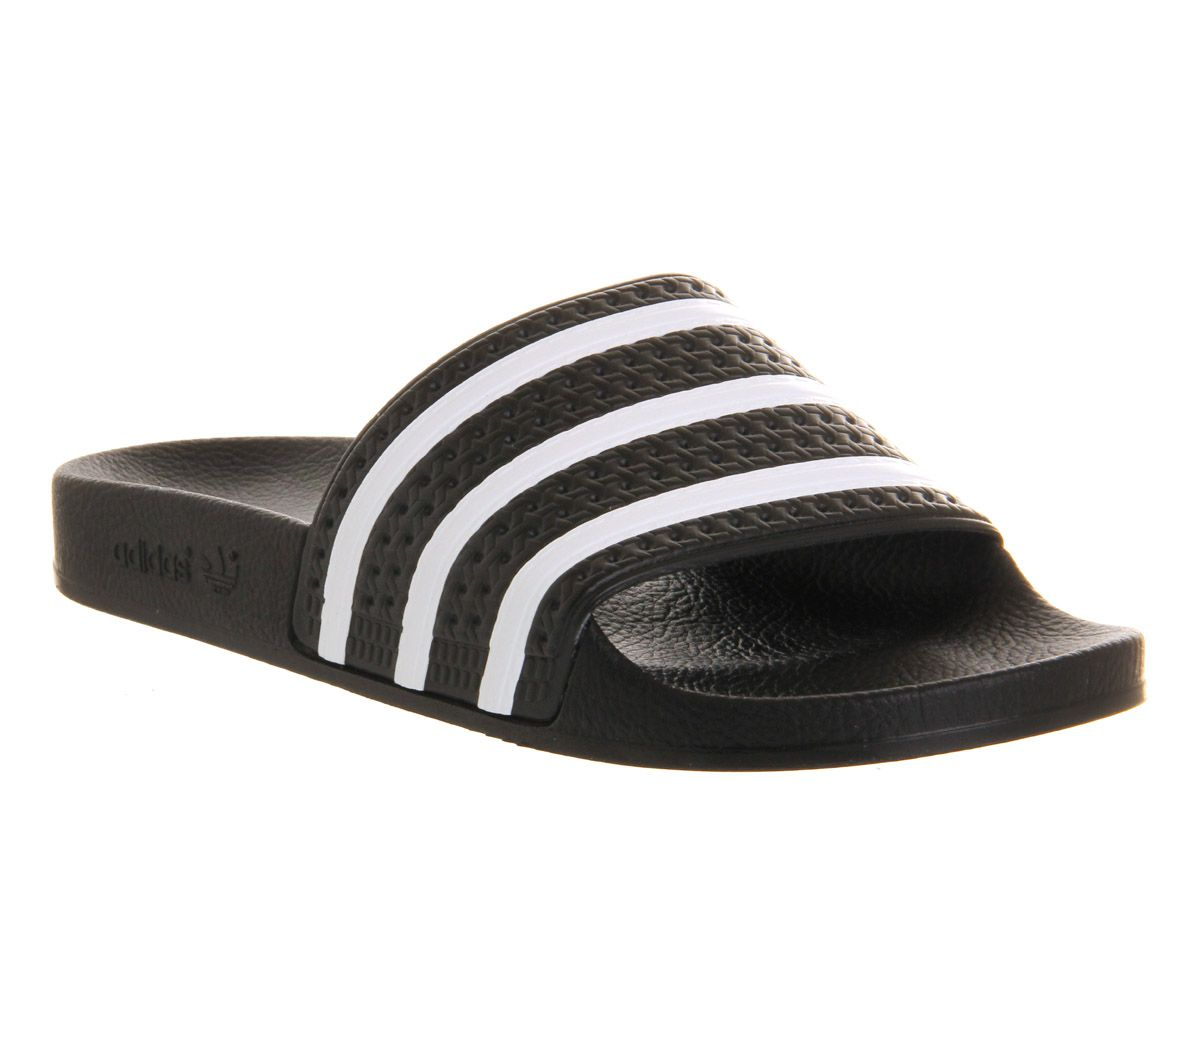 74724d833 adidas Adilette Sliders Black White - Office Girl